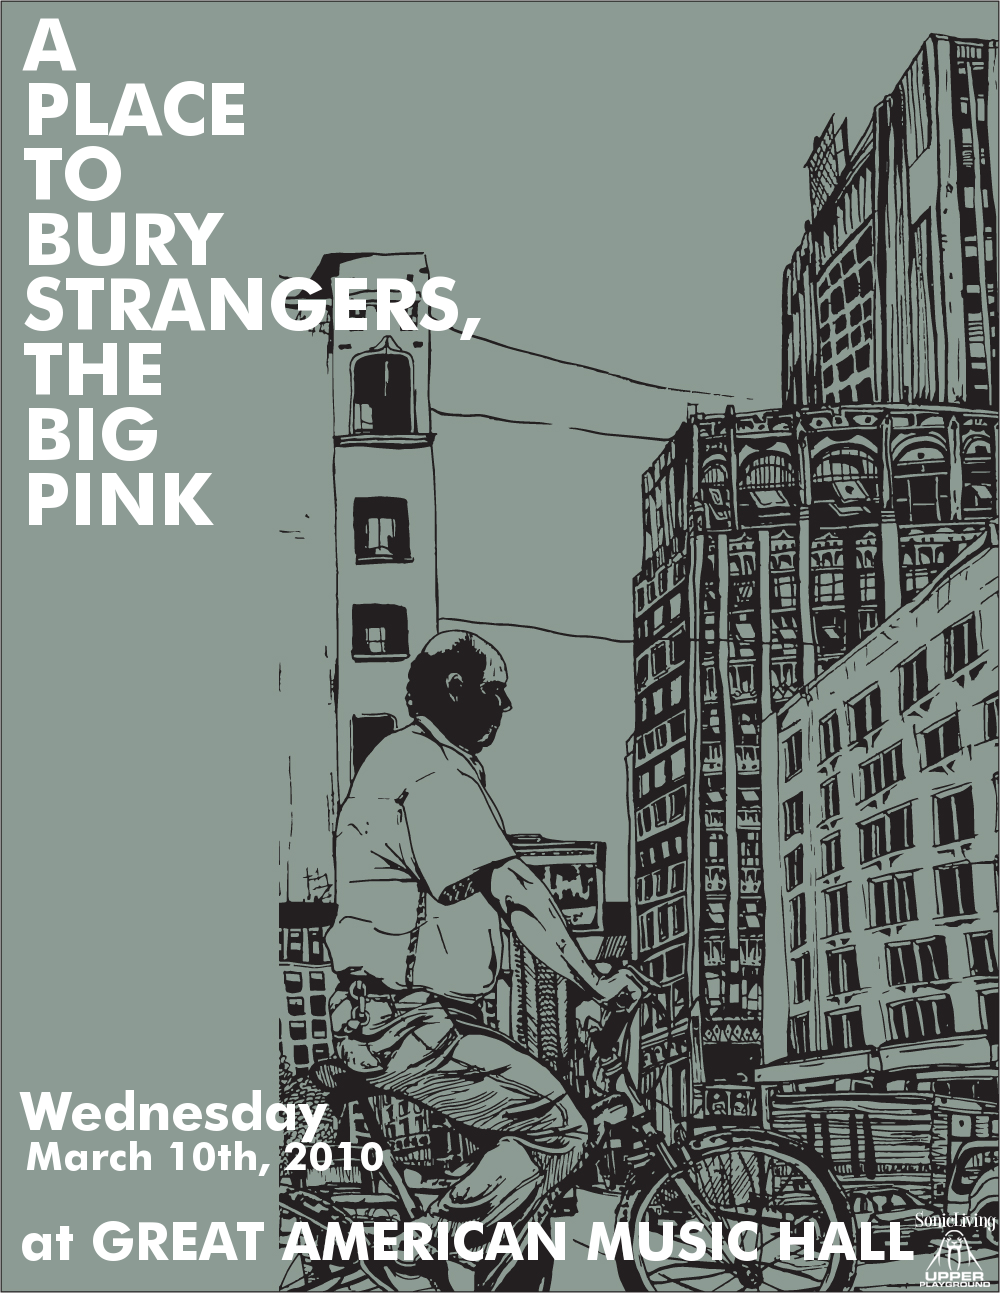 A Place To Bury Strangers / The Big Pink 2010 North American Tour